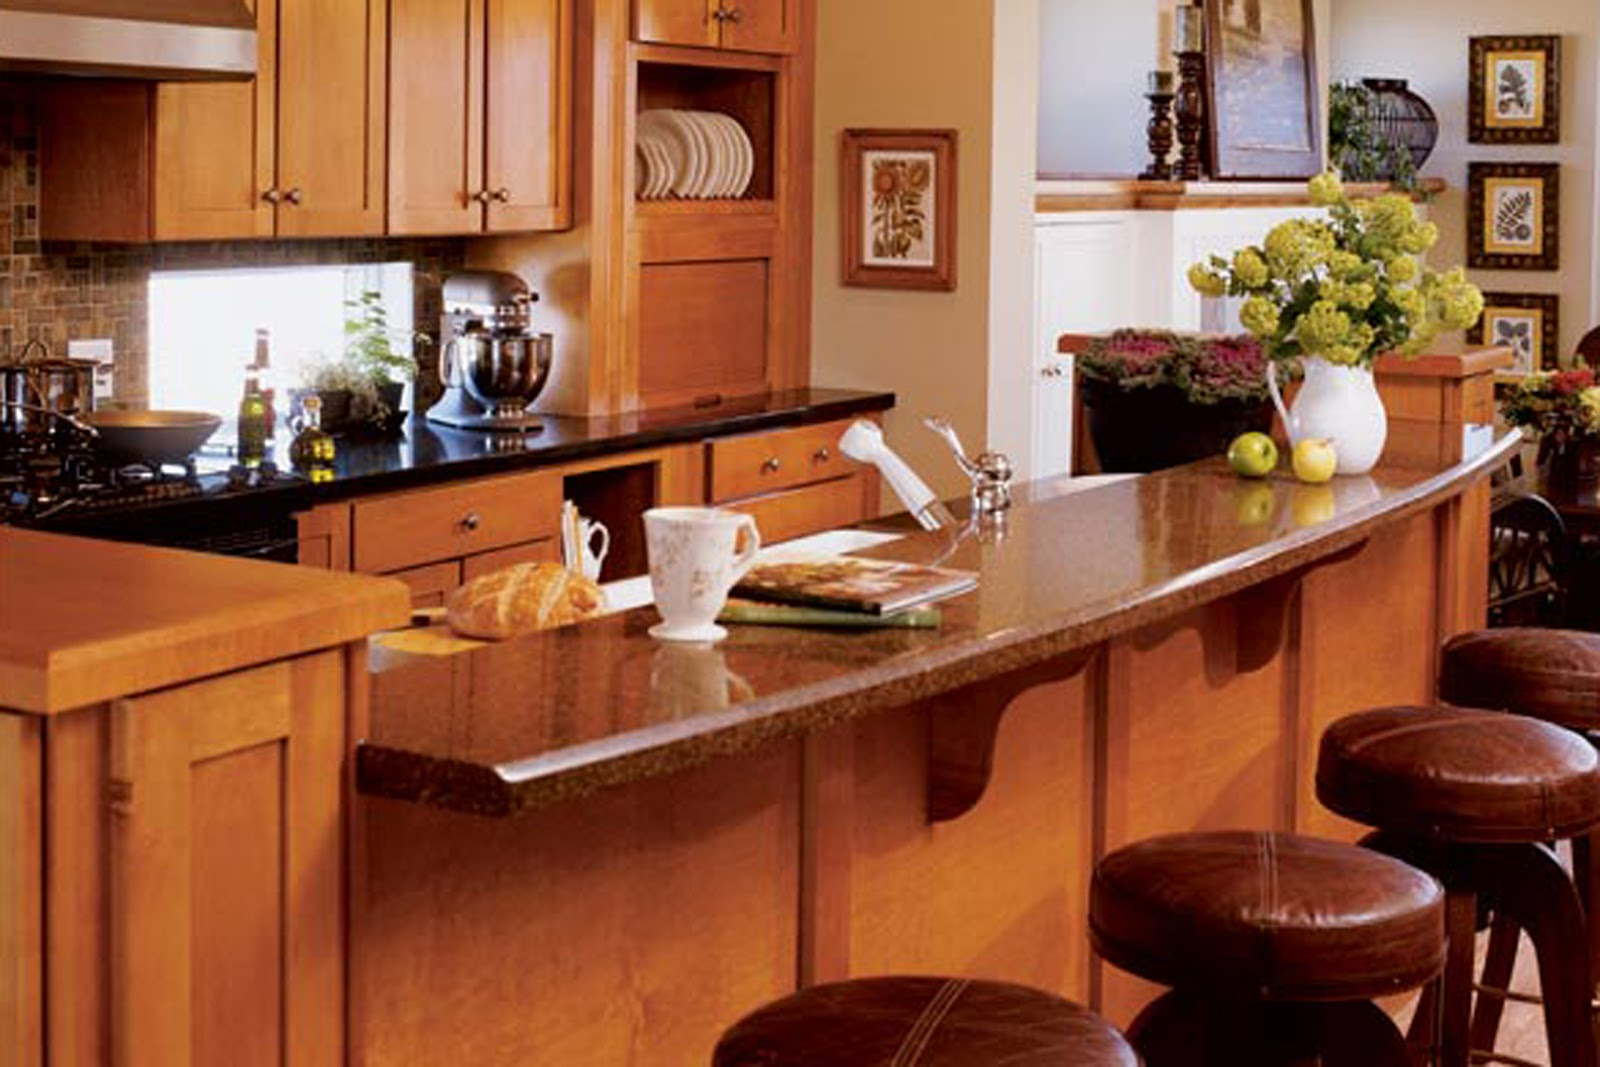 Large Kitchen Island Designs And Plans: Simply Elegant Home Designs Blog: February 2011